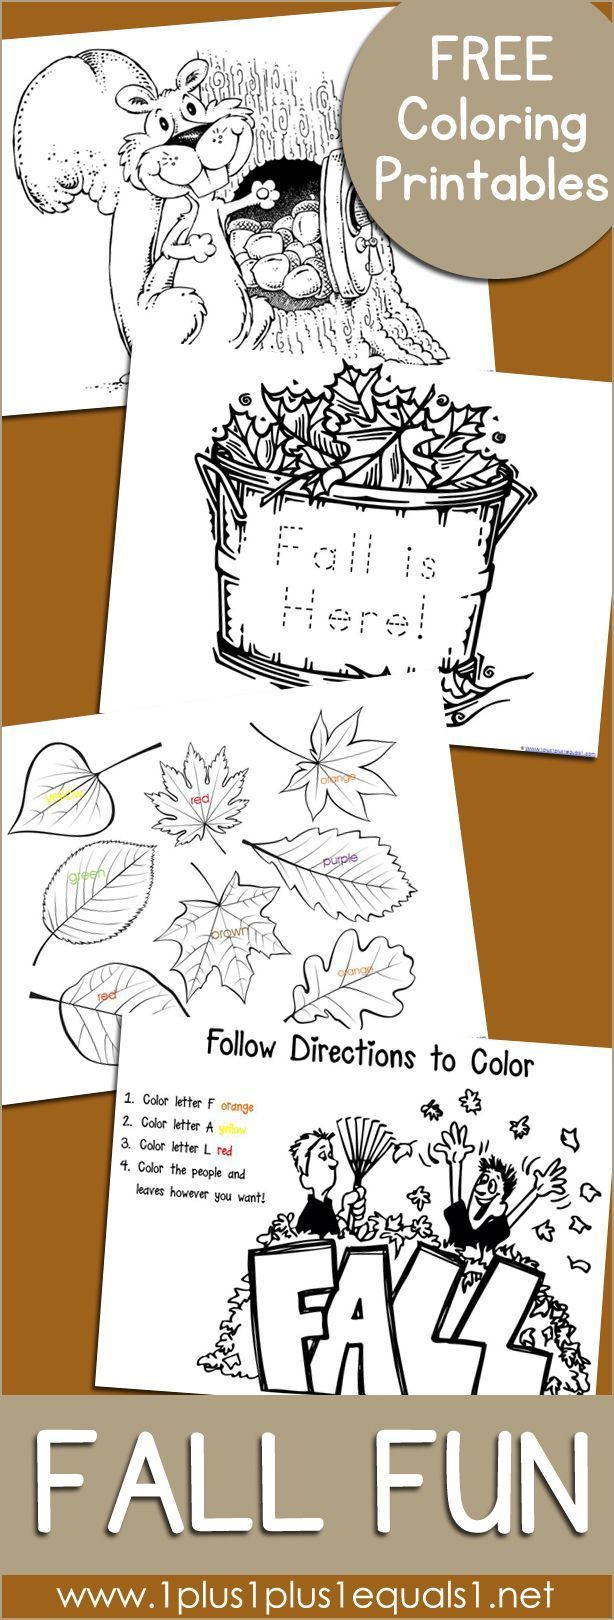 Free fall fun coloring coloring pages and coloring activities for